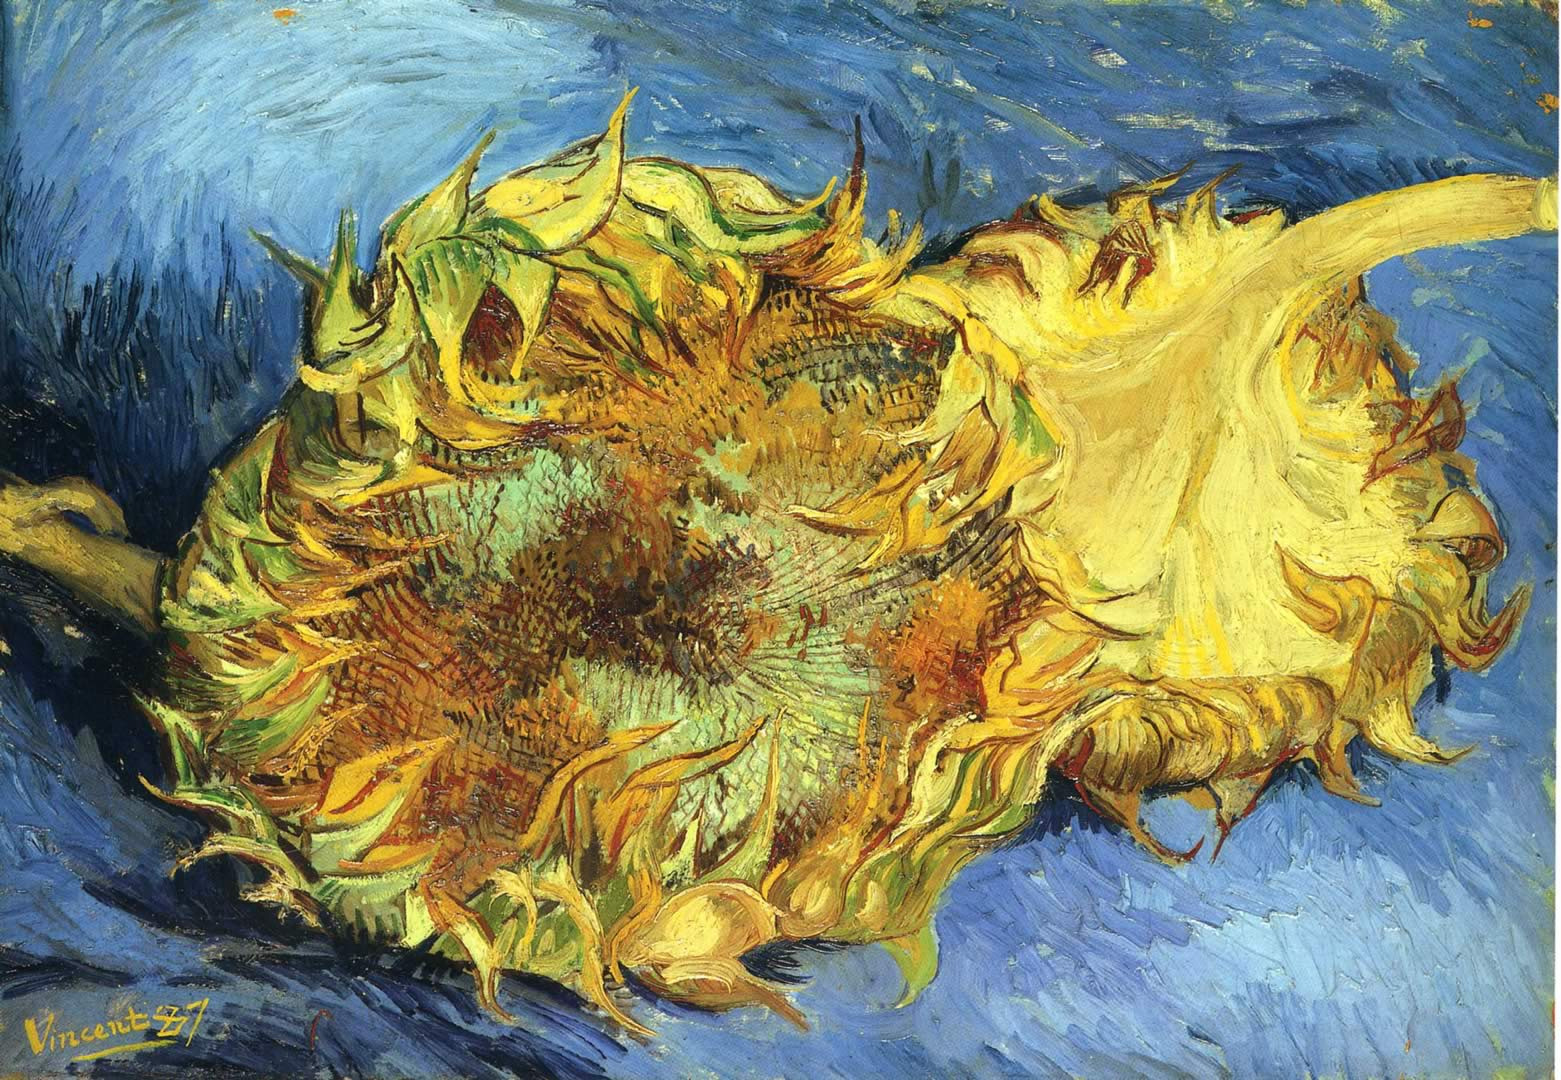 Vincent Van Gogh Paintings Sunflowers Still Life With Two Yellow Sunflowers Vincent Van Gogh